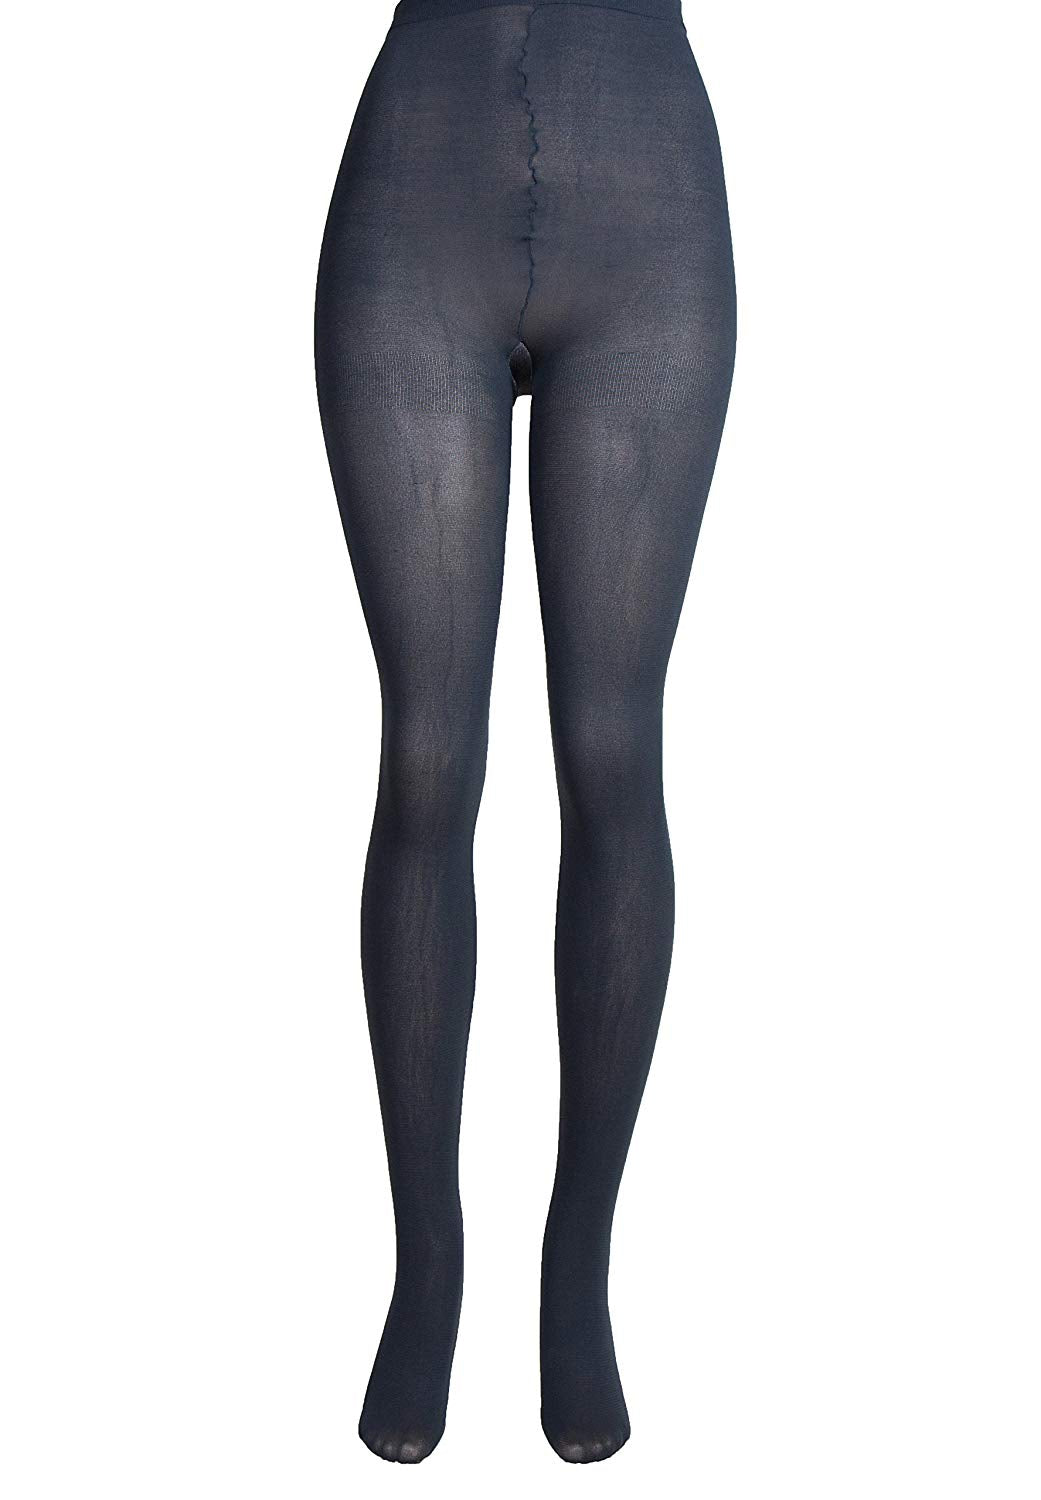 437d89bf465 Lissele Women s Plus Size Opaque Tights (Pack of 2) – Lisselle